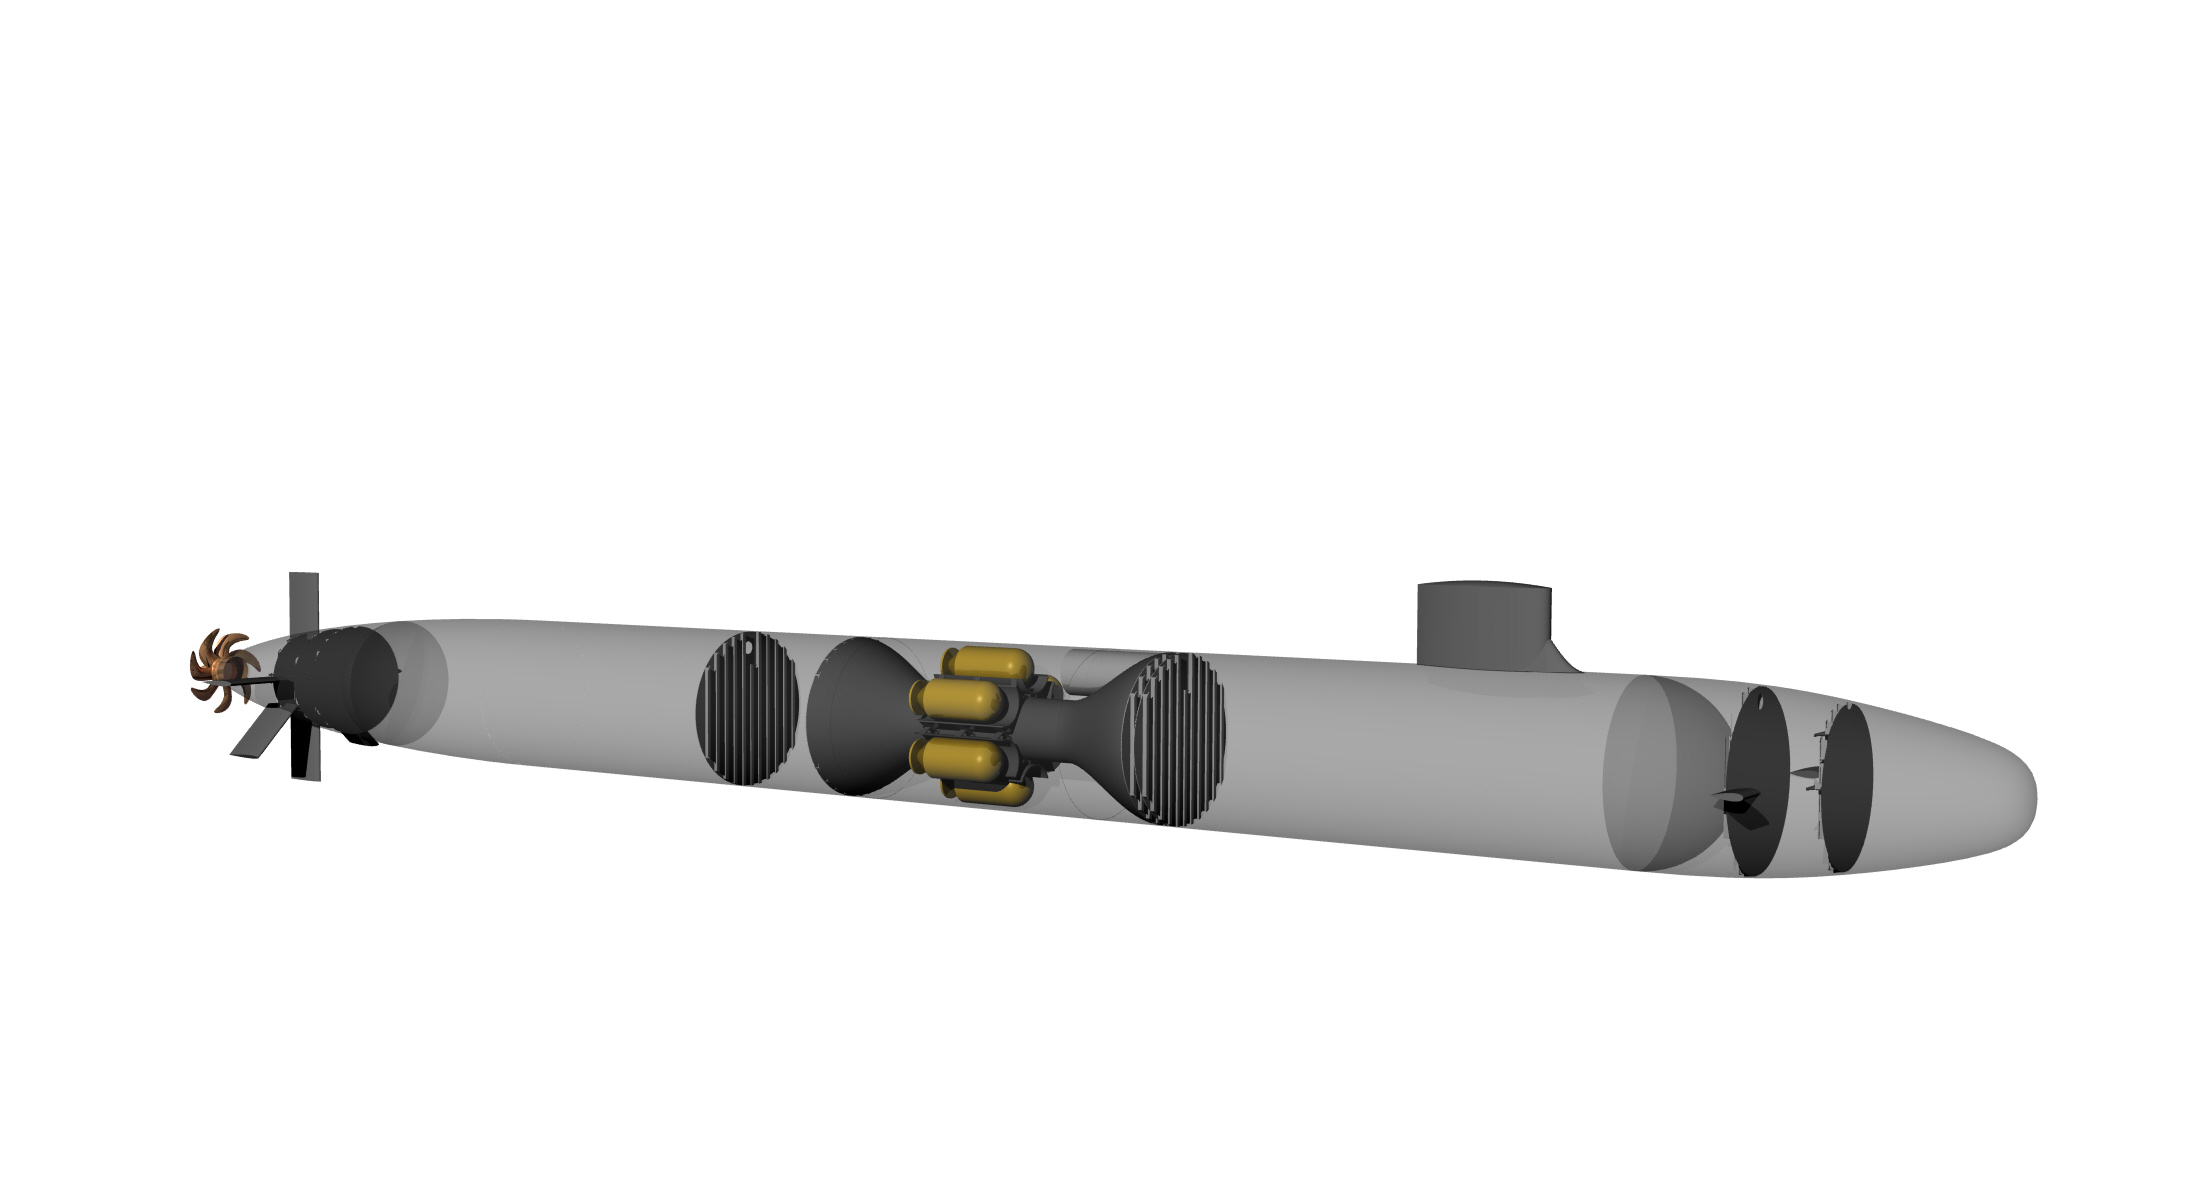 UUV deploying submarine design